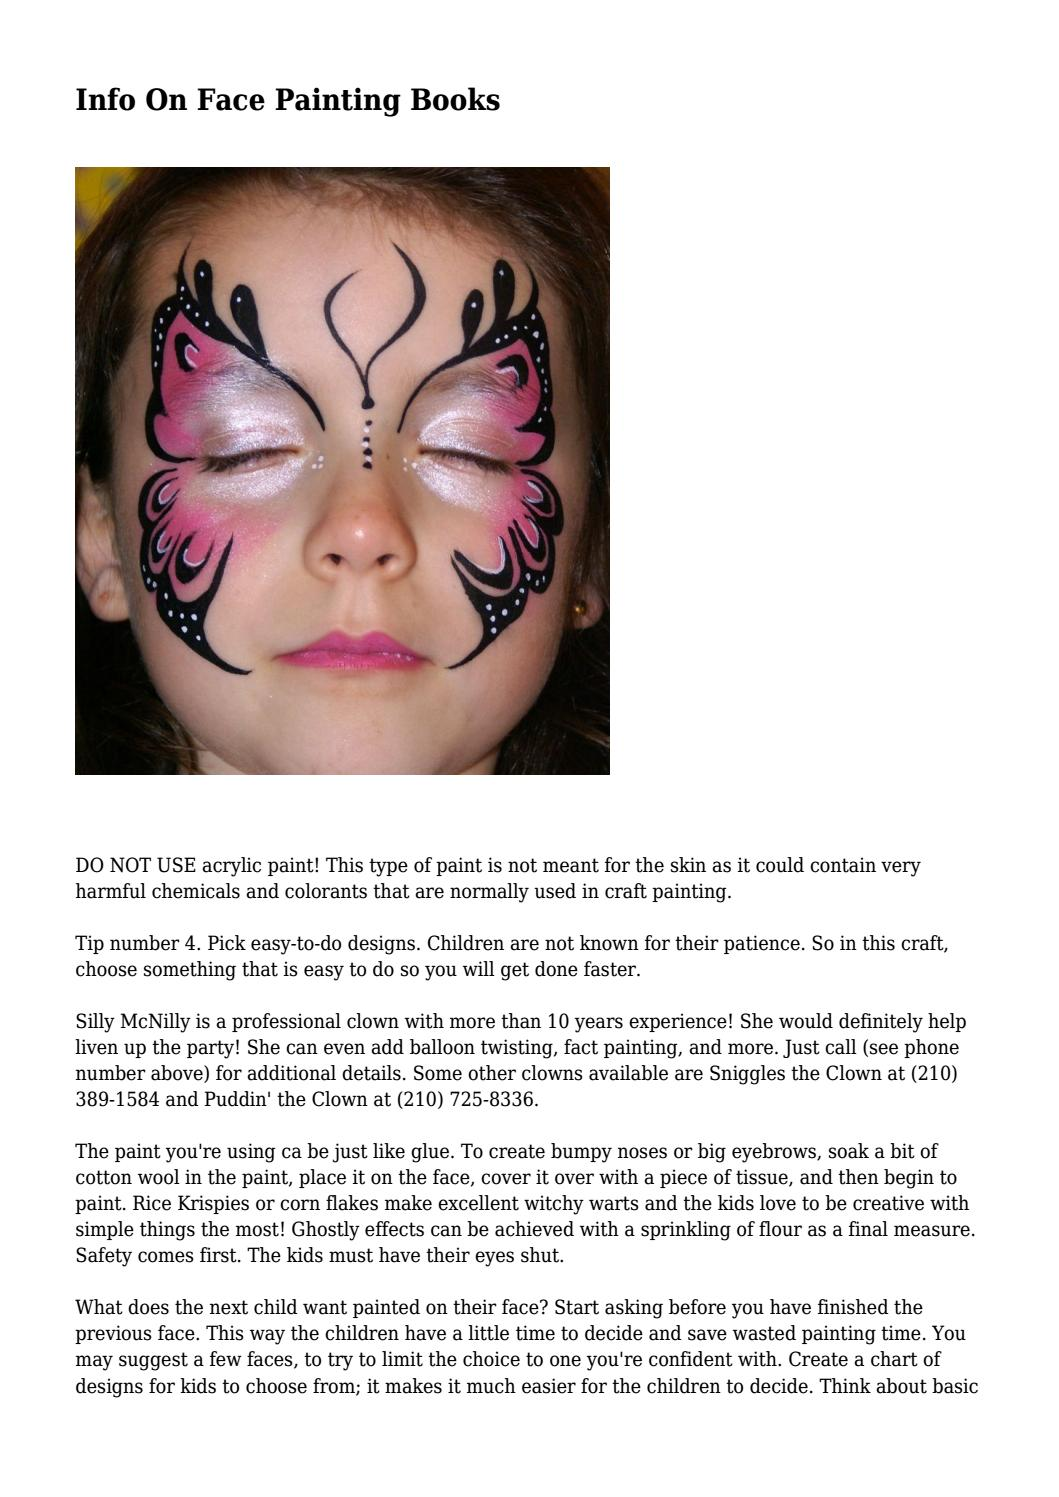 Info On Face Painting Books By Flynnaxxhfqkfzn Issuu